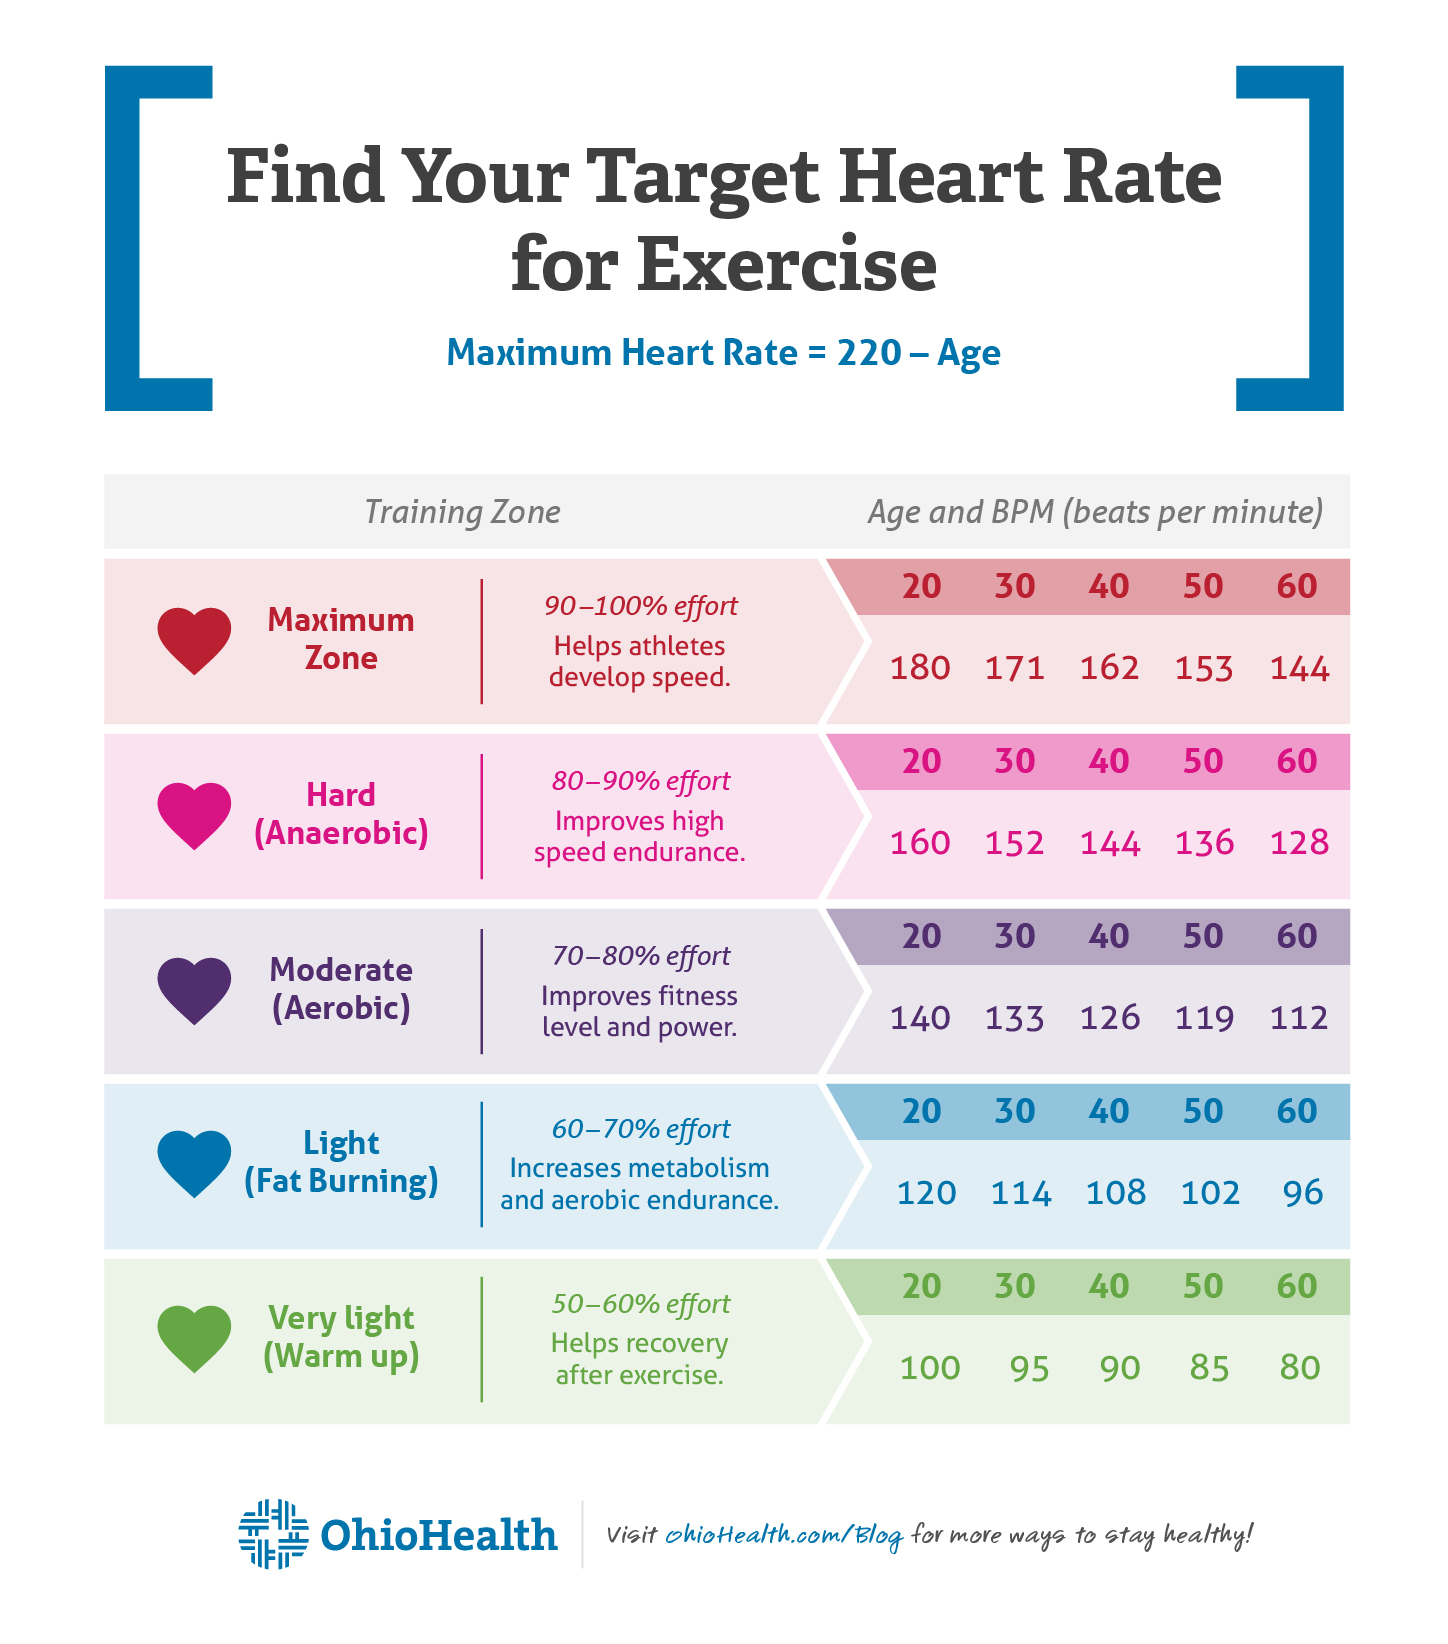 Infographic showing the target heart rate for different levels of exercise